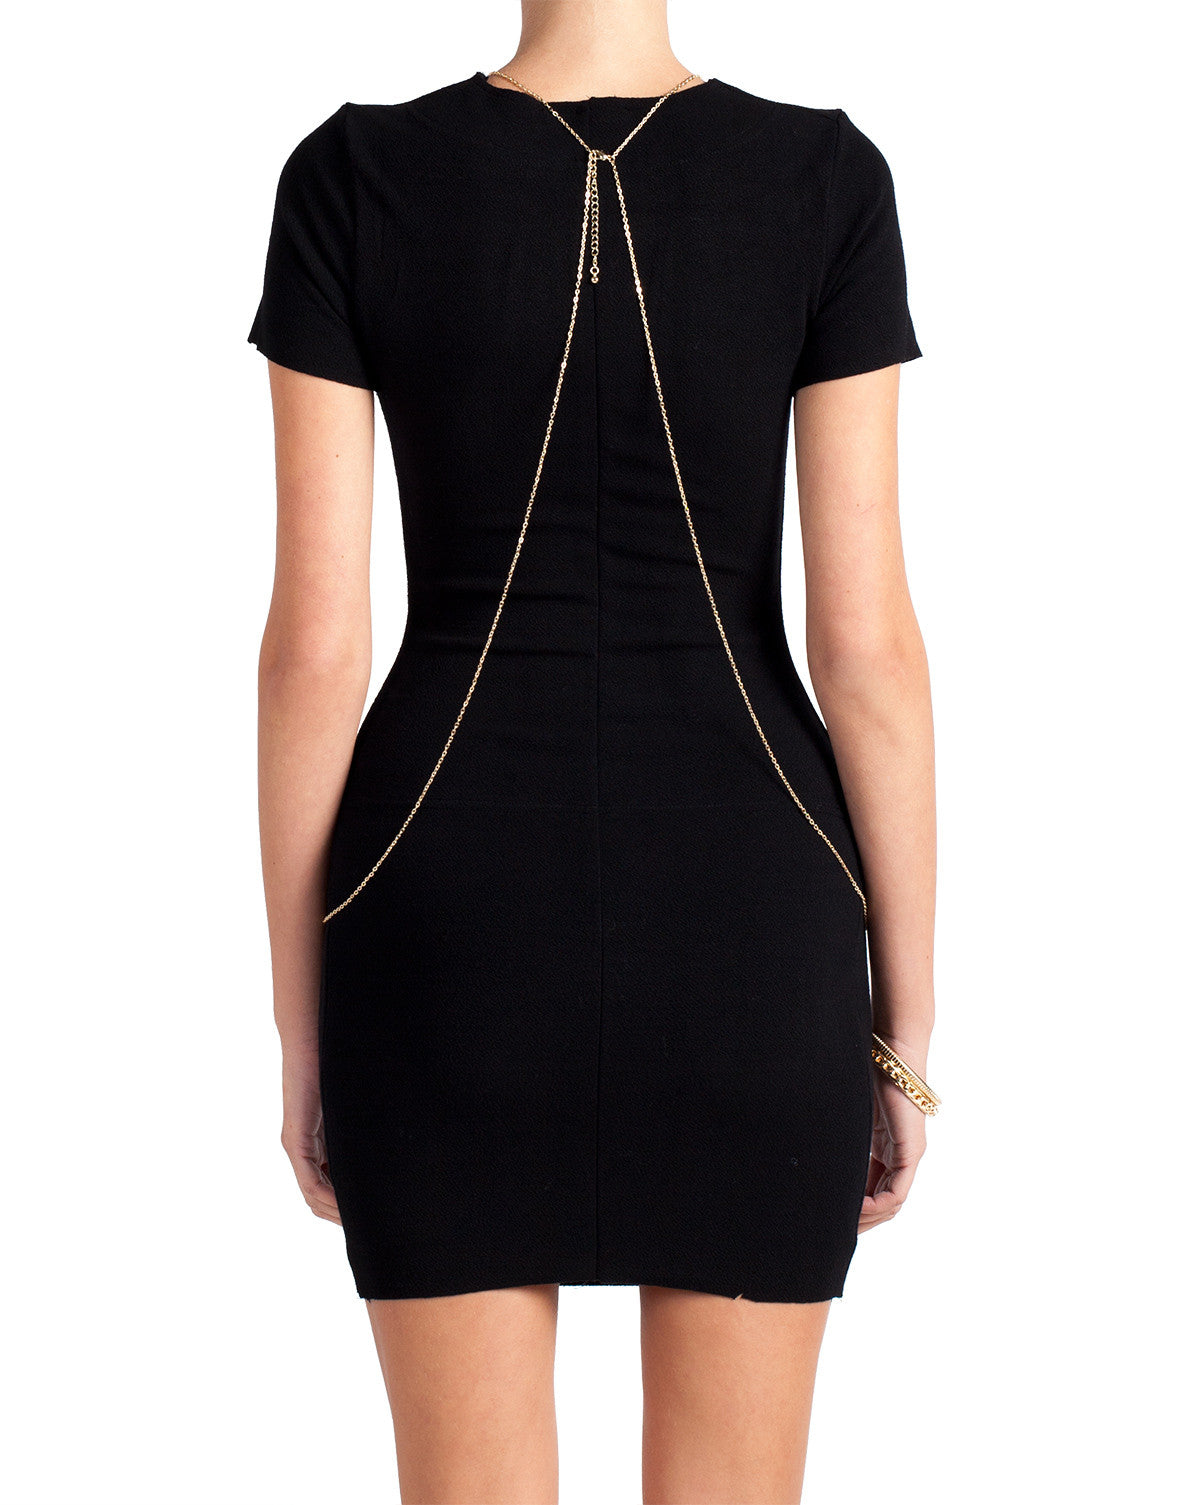 Body Con Short Sleeve Dress